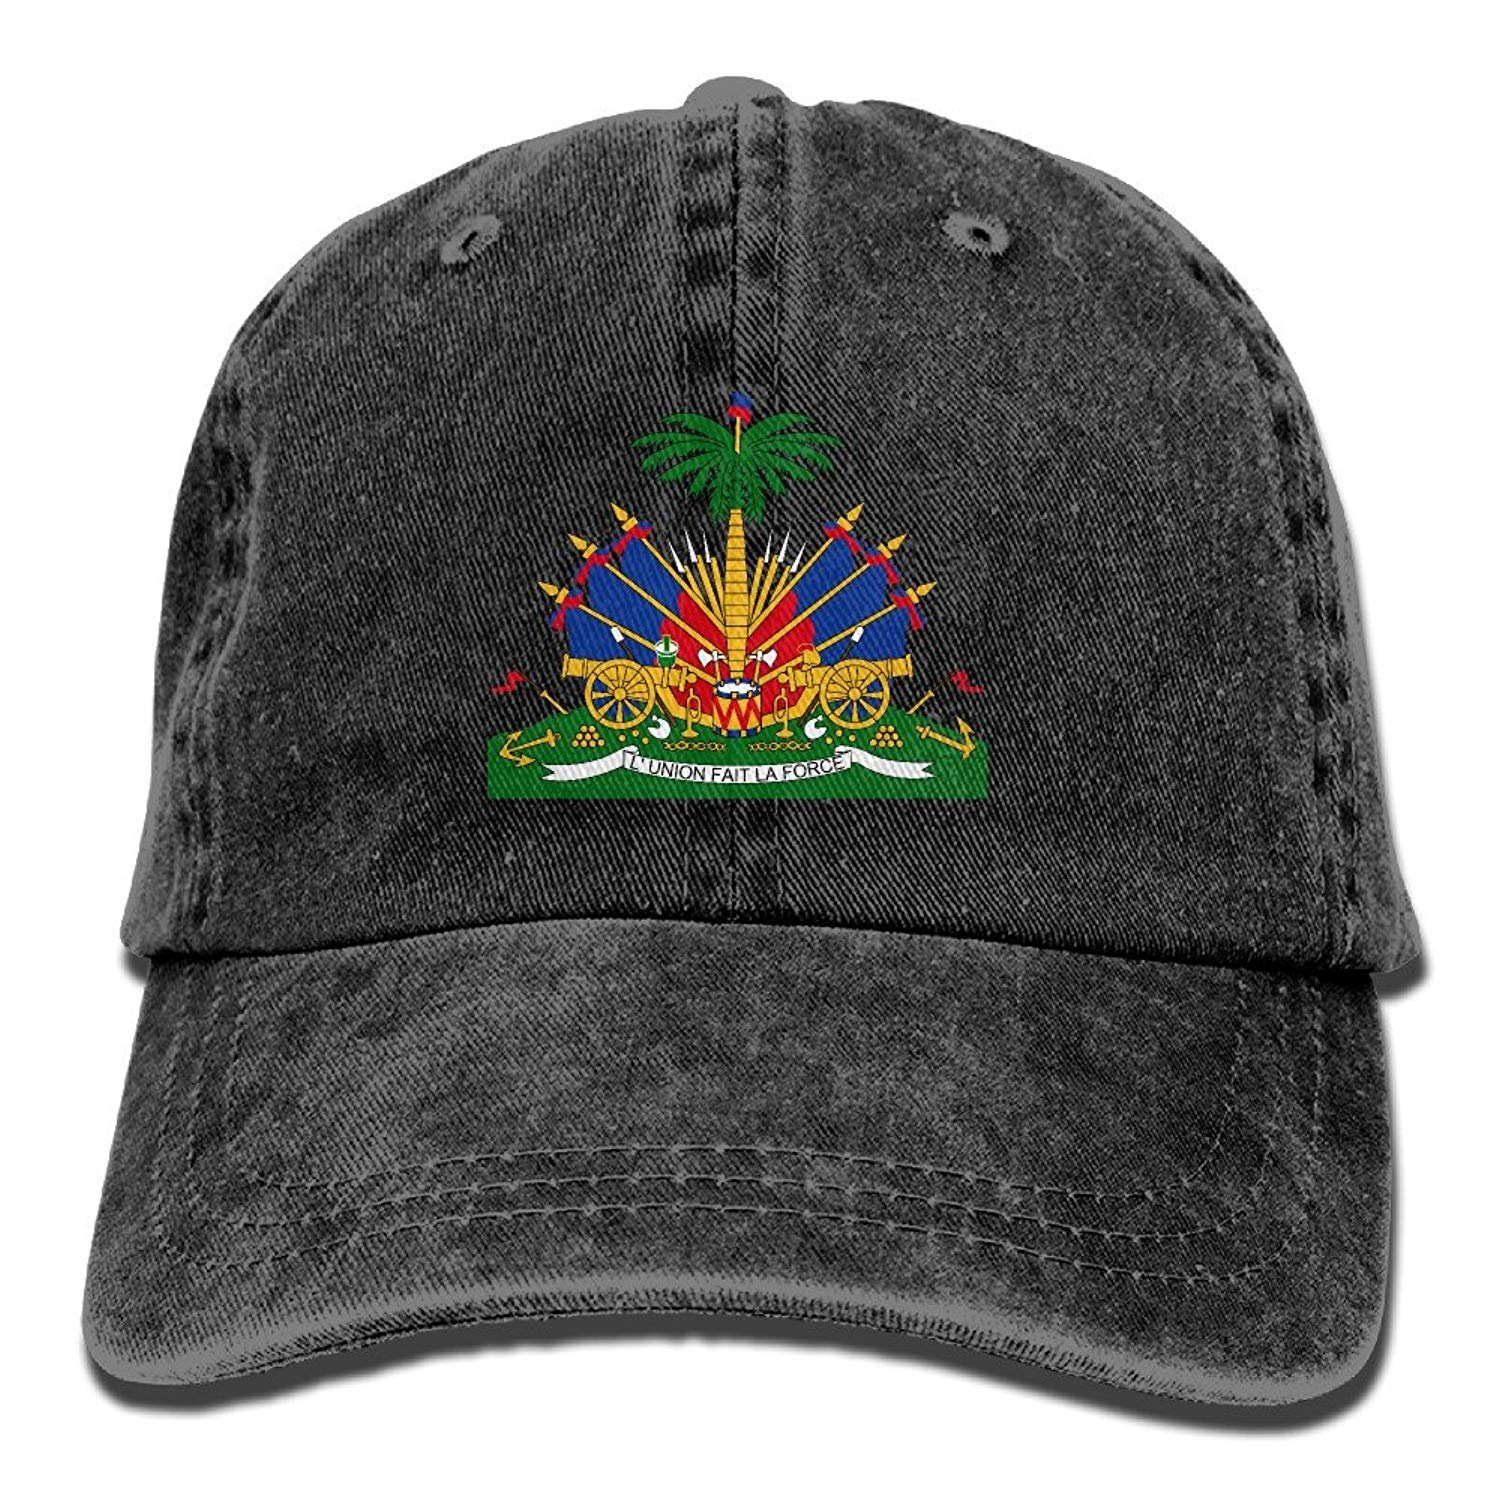 JTRVW Cowboy Hats Coat of Arms of Haiti Unisex Adult Adjustable Jeans Dad Hats